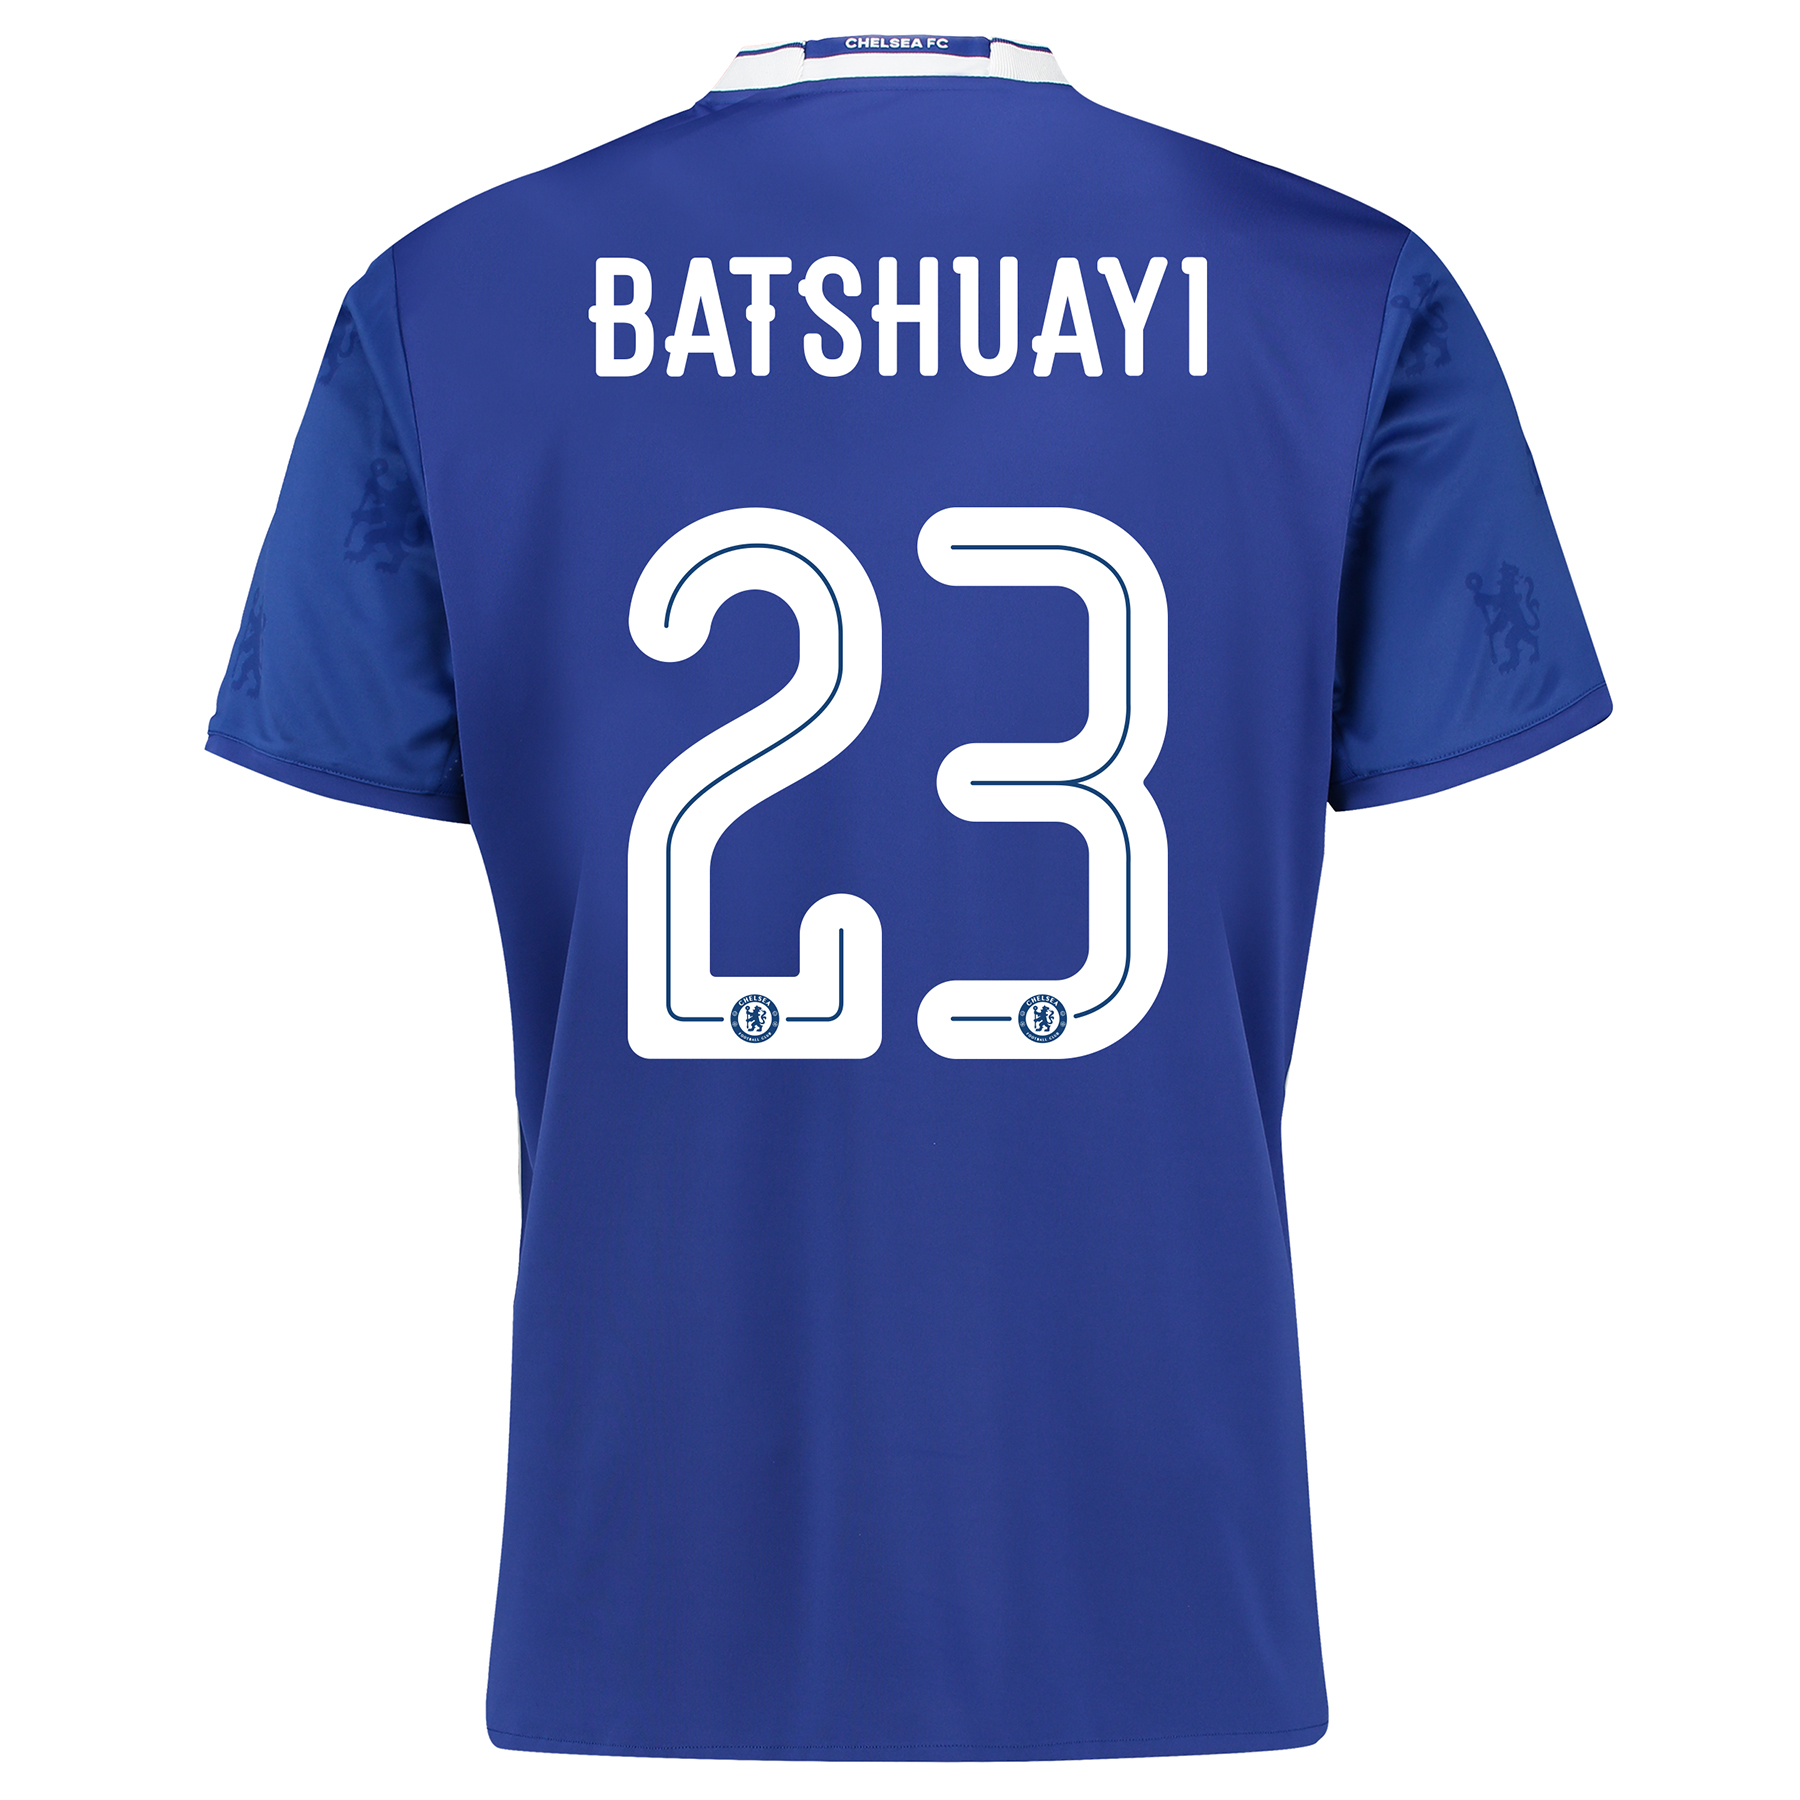 Chelsea Linear Home Shirt 2016-17 with Batshuayi 23 printing